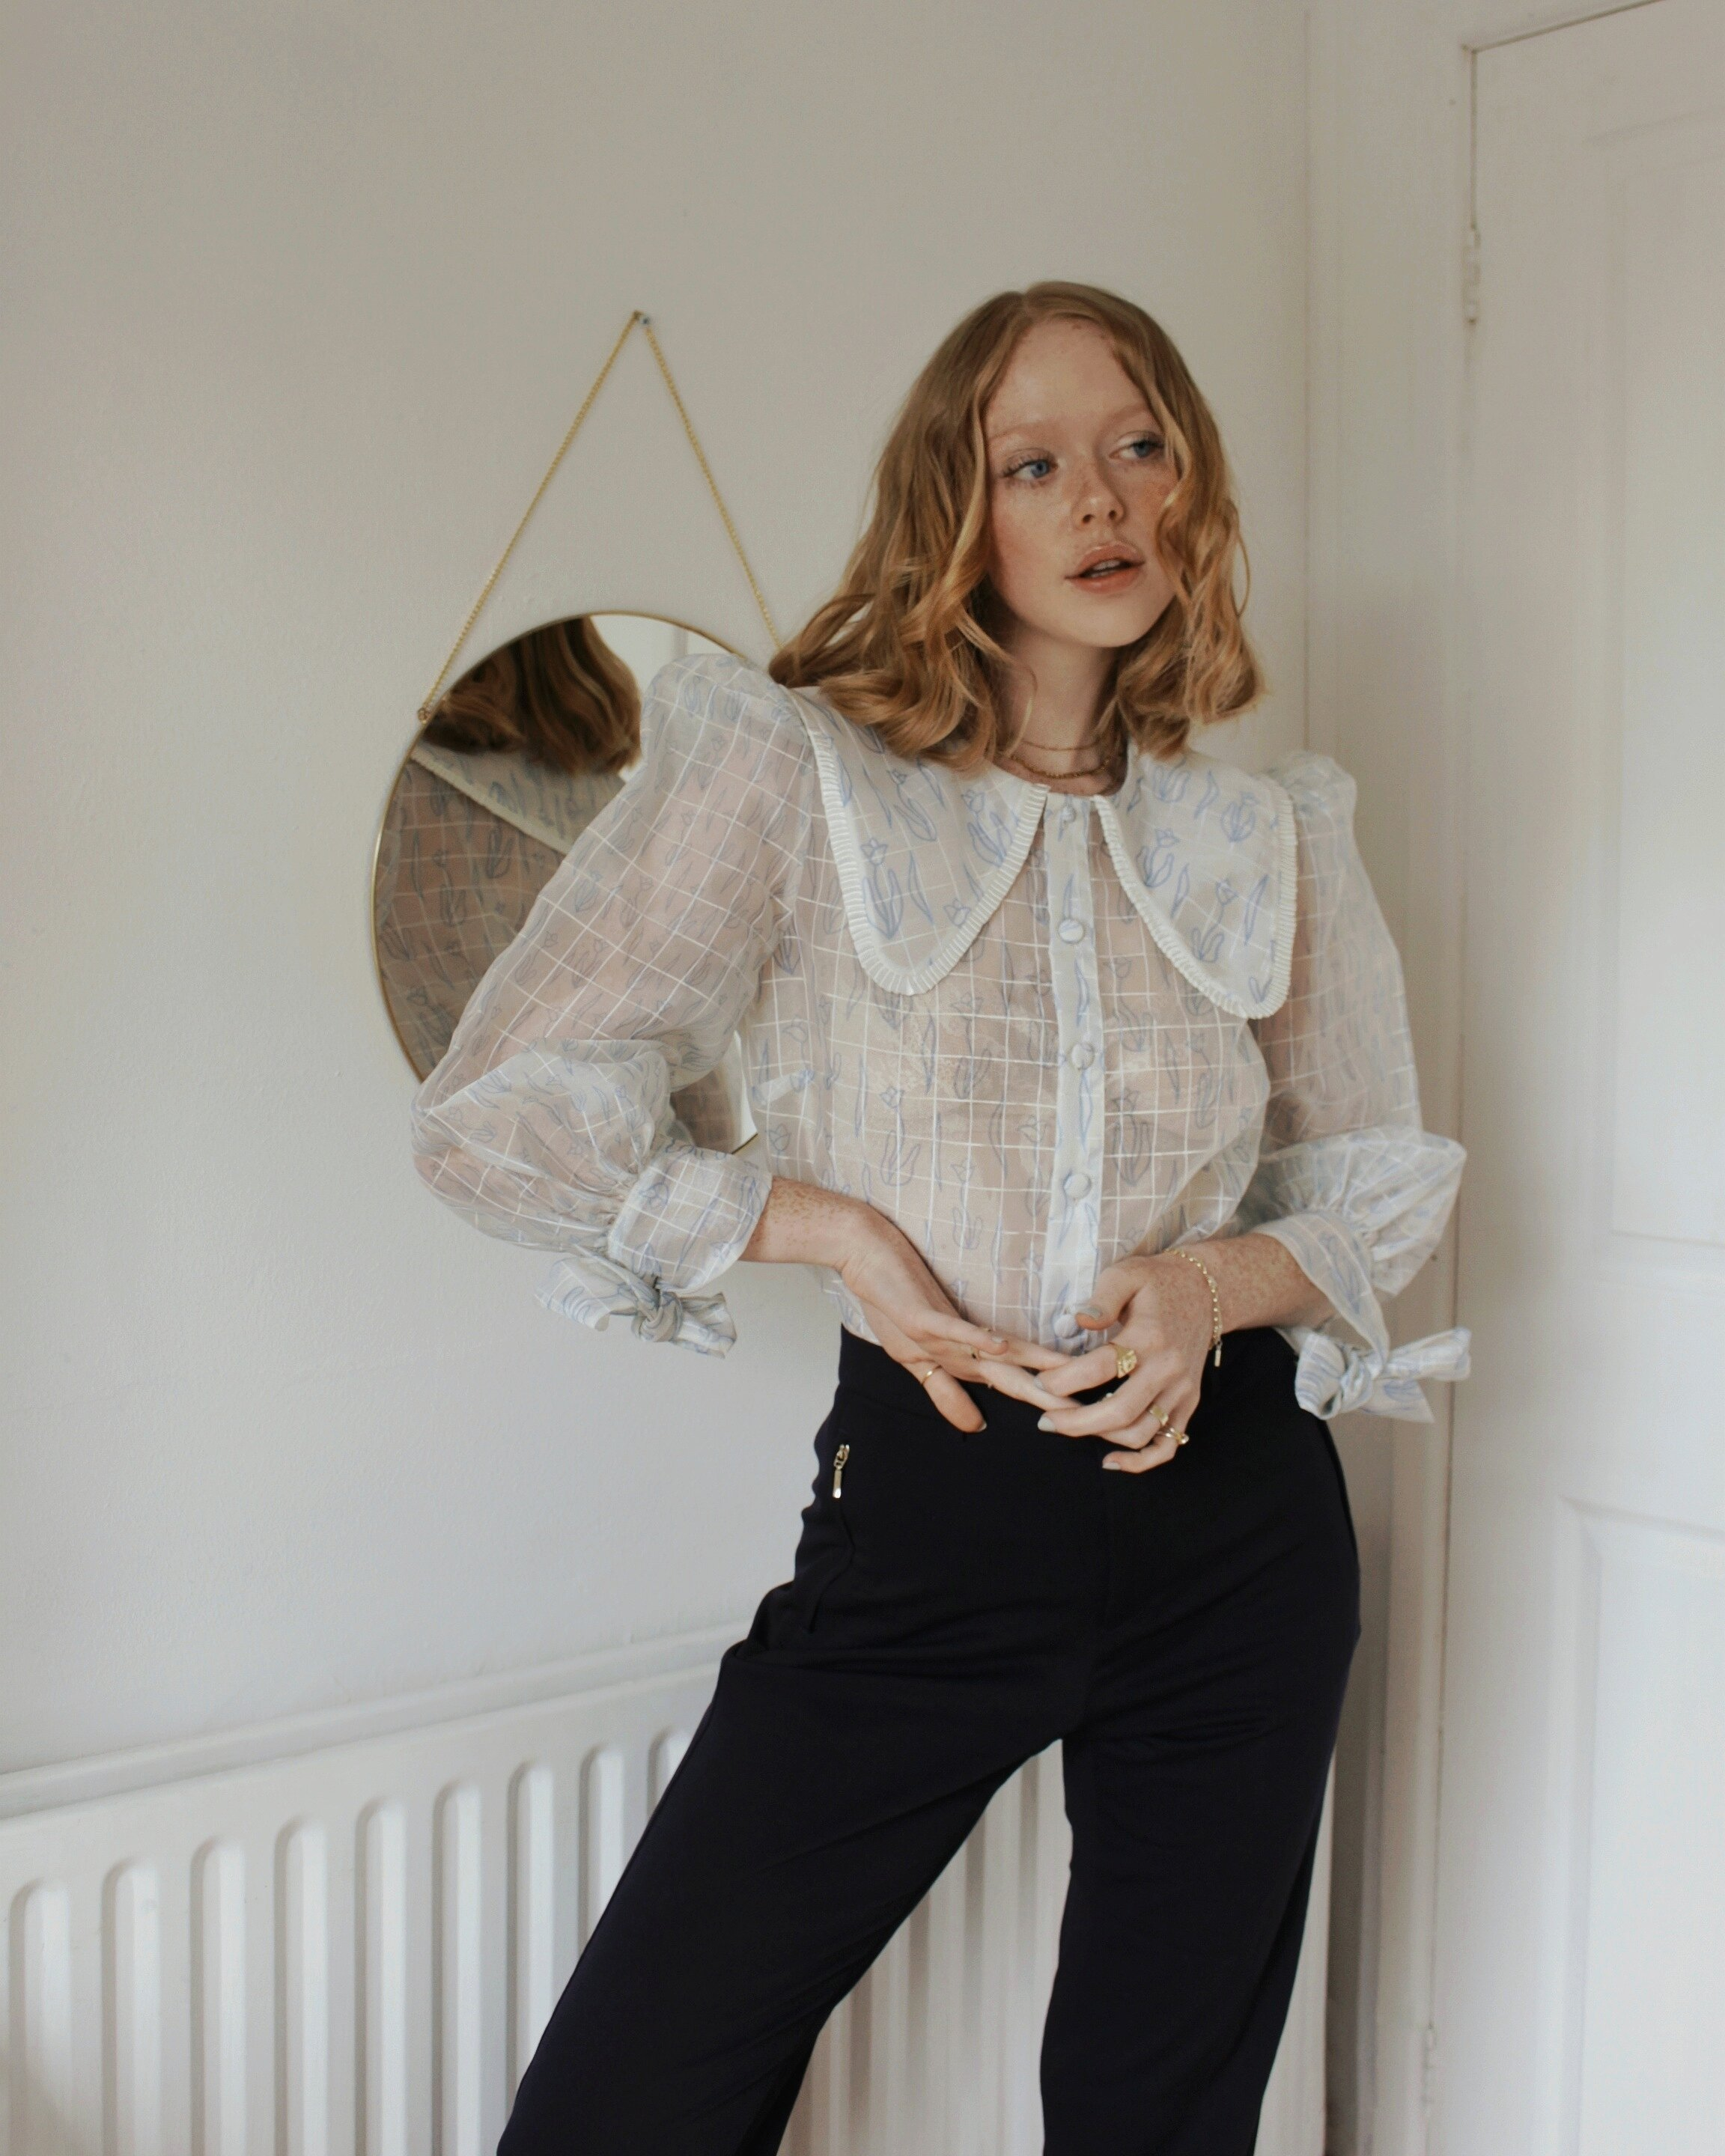 What is your most loved Olivia Annabelle piece?   My favourite OA piece is definitely the  Clive Tulip Blouse  – I love the statement collar and puffed sleeve detail – it's so so beautiful!   What is your style aesthetic?   My style is quite minimal. I love neutral pieces, but I love things that have a bit of 'extra' to them too. I love smart trousers with wide exaggerated legs, or blouses that have ruching or sleeve details. I like a classic style but with a modern twist.   What trends are you loving right now?   My favourite trend at the moment is definitely statement collars. I love seeing shirts with large pointed collars and blouses with embroidered necklines. I'm also really loving organza-everything too!